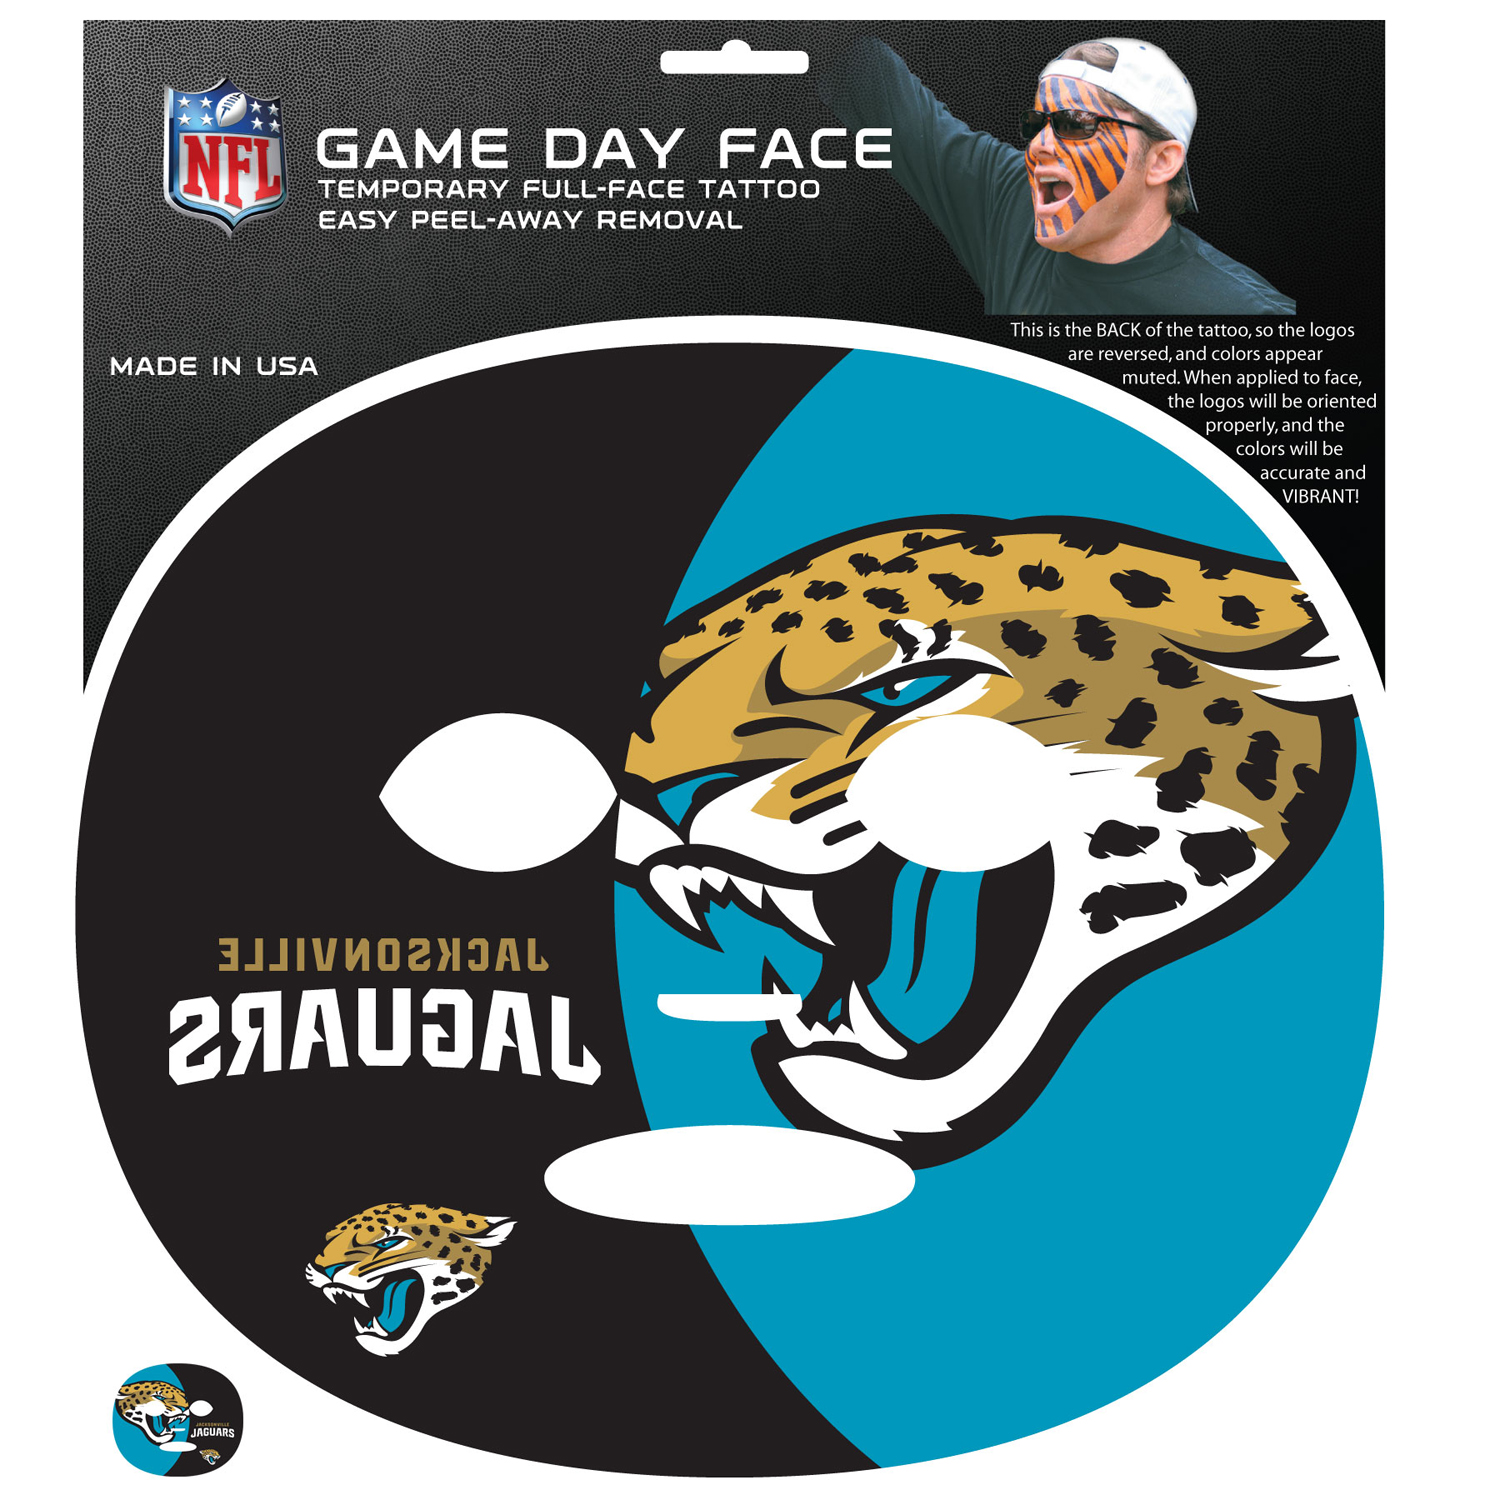 Jacksonville Jaguars Set of 8 Game Day Faces - No better way to show your team pride than by painting your face. Siskiyou's Game Day Face Temporary Tattoo isn't your typical face paint. It is a water based application that doesn't smudge, smear or sweat off while you're wearing it and easily peels off after you're done celebrating your team's big Win! The temporary tattoo is large enough to trim down to fit your face. Our Game Day Face Temporary Tattoo's are fun for fans of all ages. You may have seen our product before, these are the same Temporary Face Tattoos as pitched on ABC's Shark Tank.